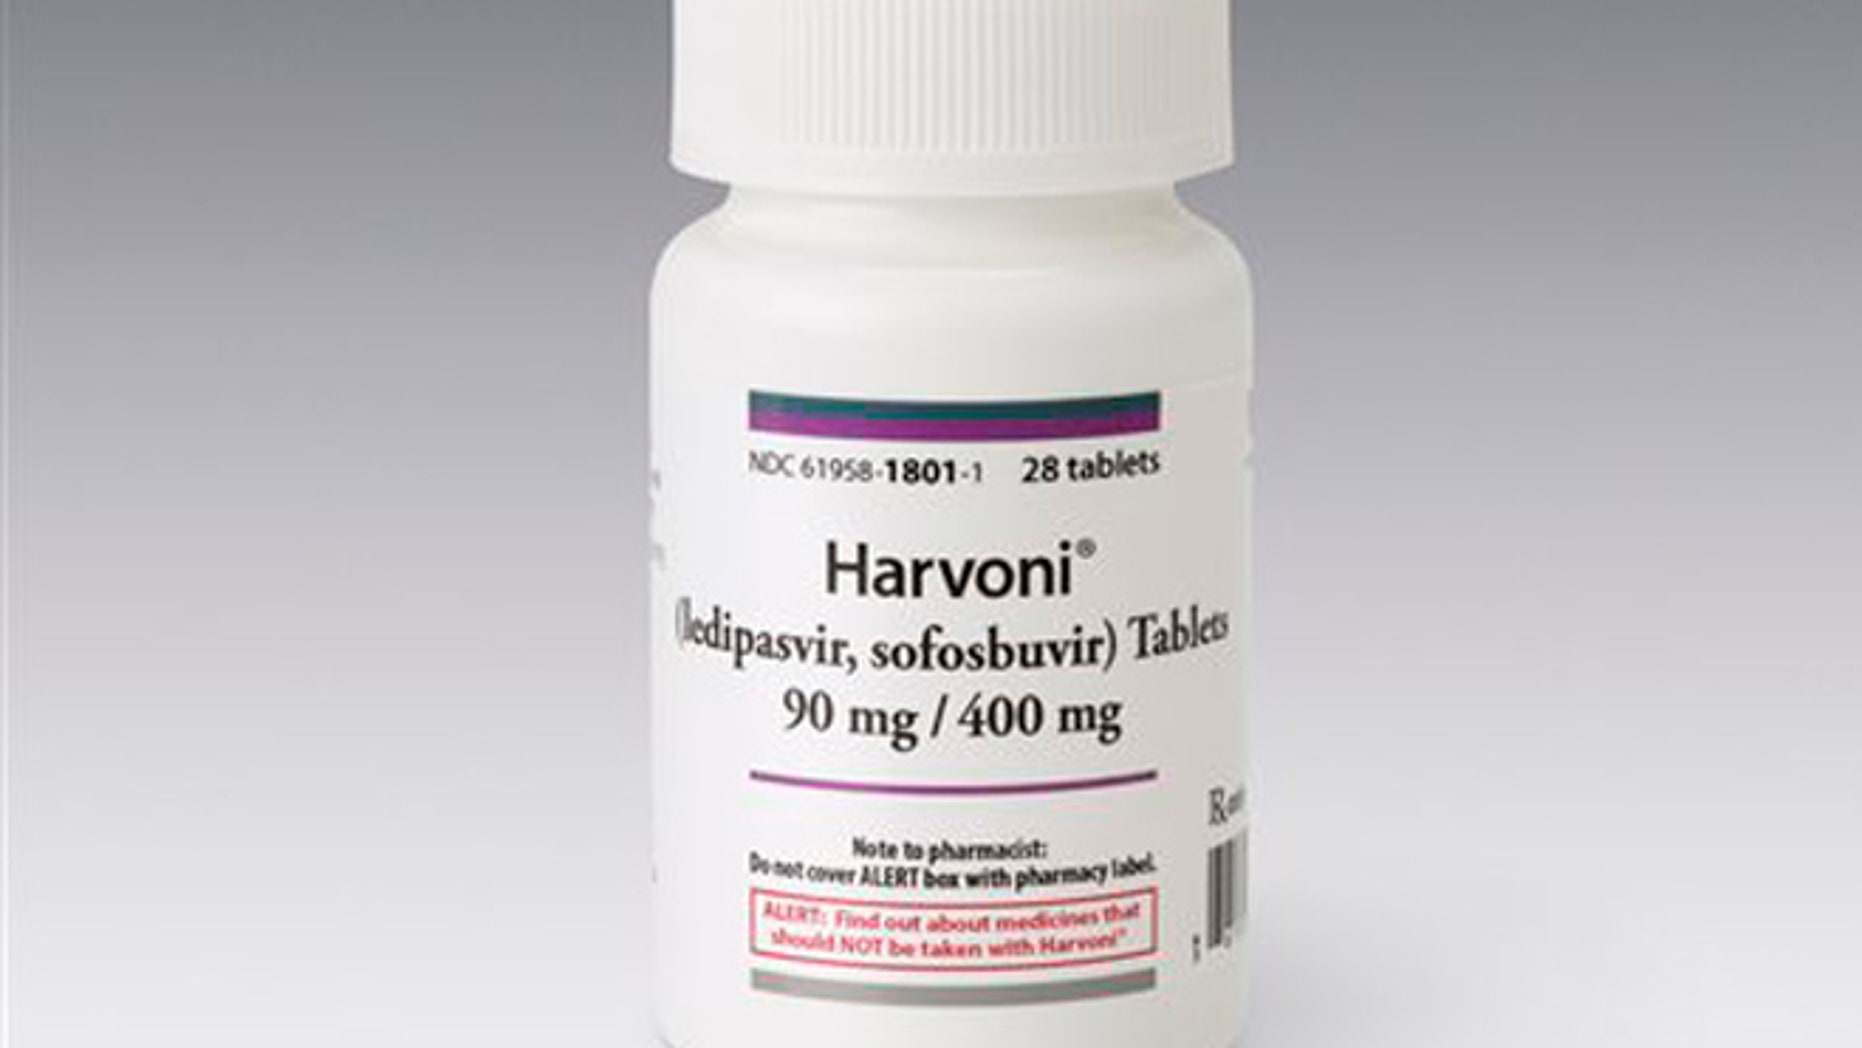 This image provided by Gilead Sciences shows a bottle of the Hepititis drug Harvoni.  Harvoni, the newest pill from California-based Gilead Sciences, accounted for more than three-fourths of the prescriptions filled for hepatitis-C drugs in the first three months of this year, according to IMS Health.